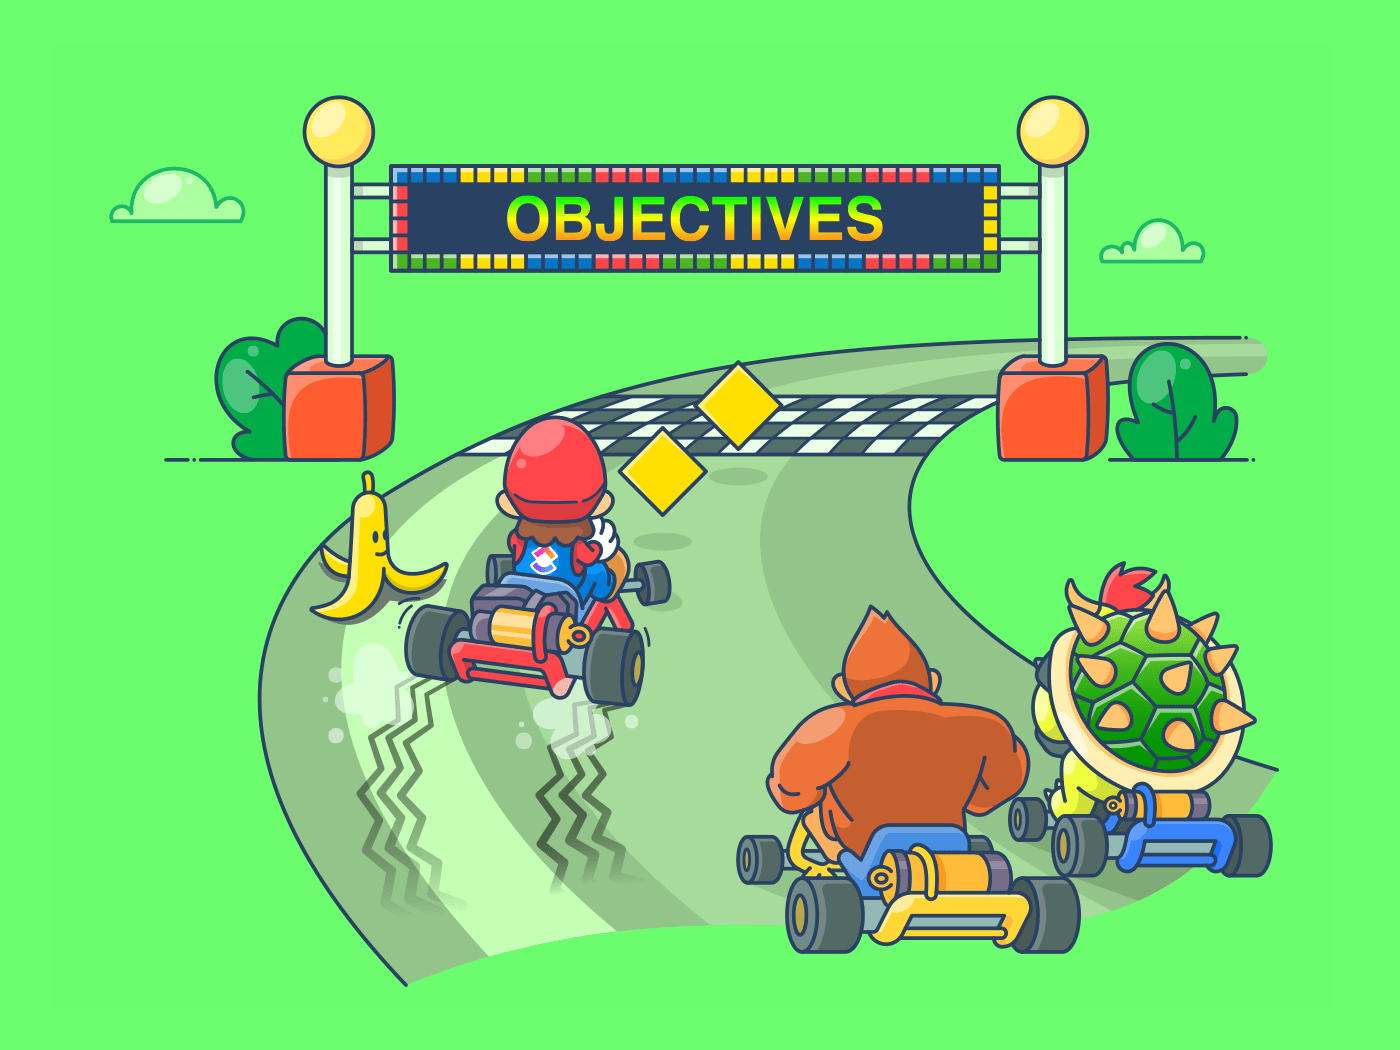 image of Mario and Donkey Kong kart racing